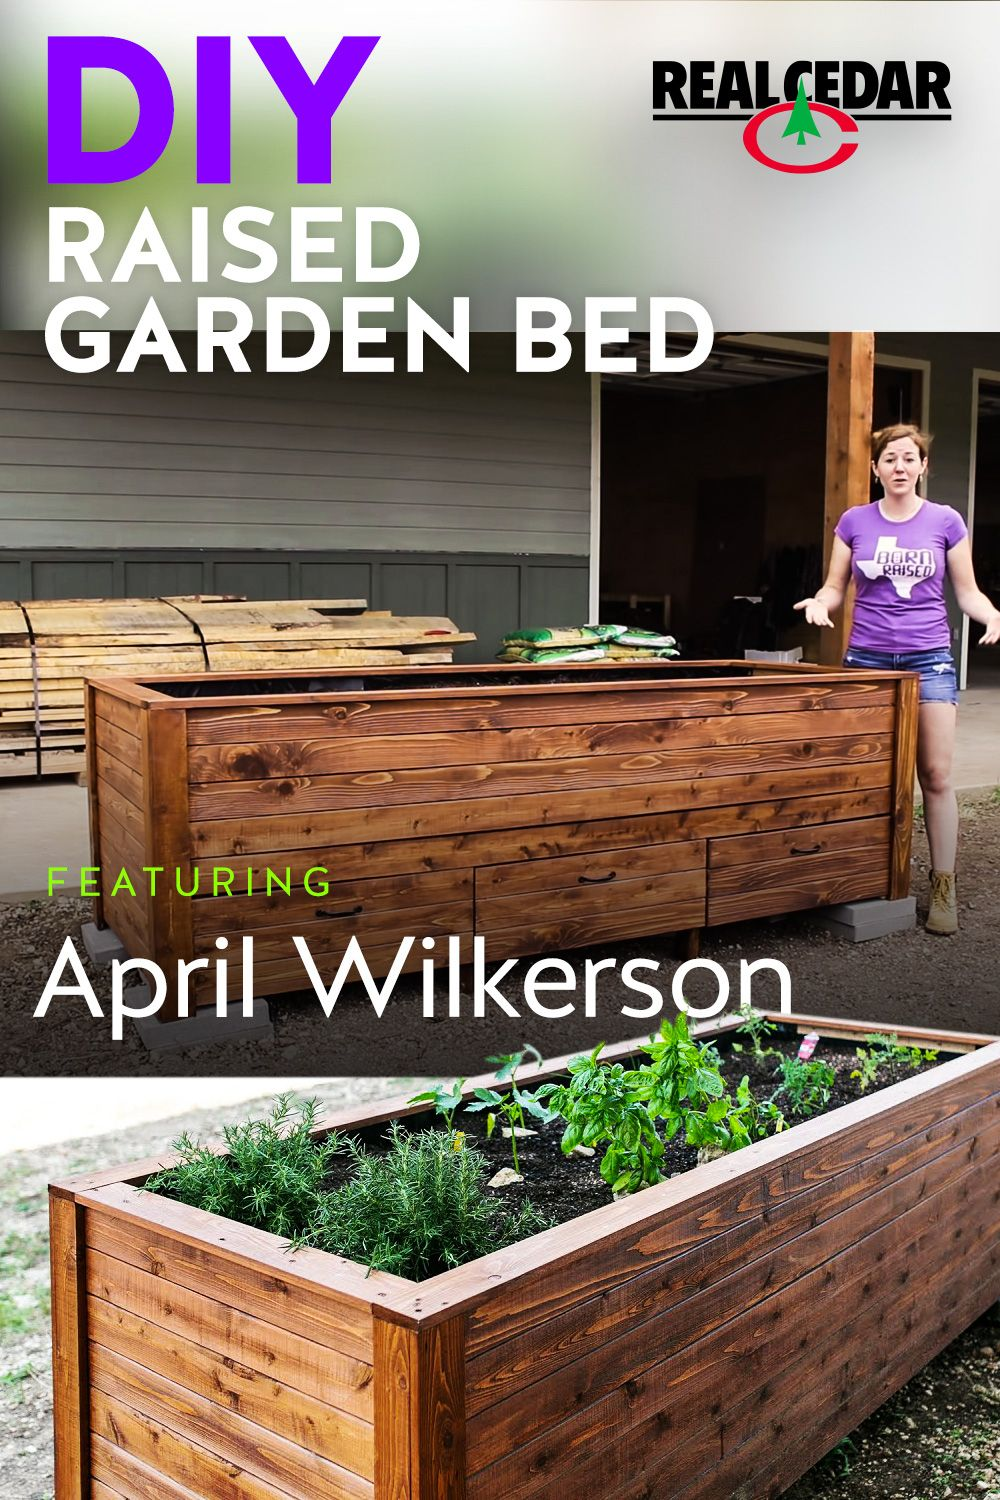 Project Of The Week Raised Garden Bed Real Cedar Beautiful Raised Garden Beds Raised Garden Diy Raised Garden